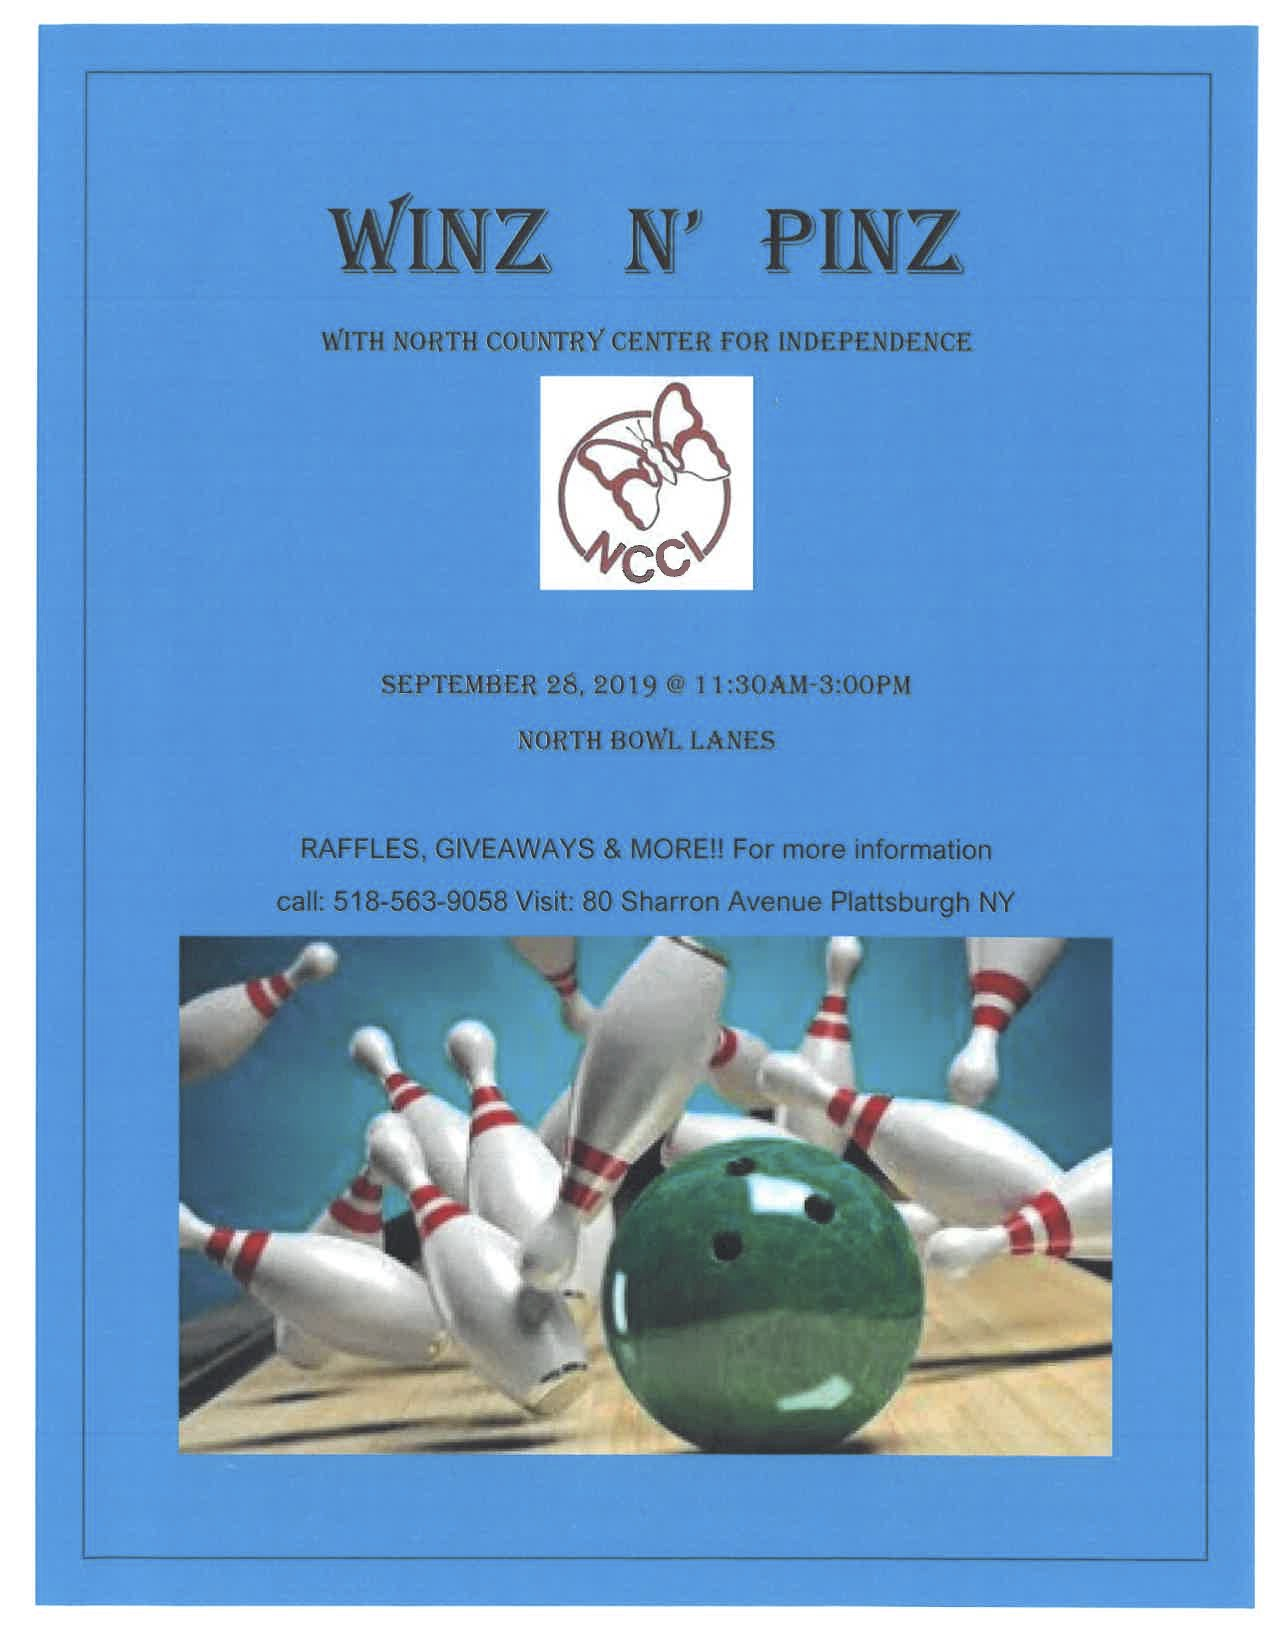 Winz N' Pinz with North Country Center for Independence - September 28, 2019 @ 11:30 am - 3:00 pm. North Bowl Lanes - raffles, giveaways & more!! For more information call: 518-563-9058 visit 80 Sharron Avenue, Plattsburgh, NY